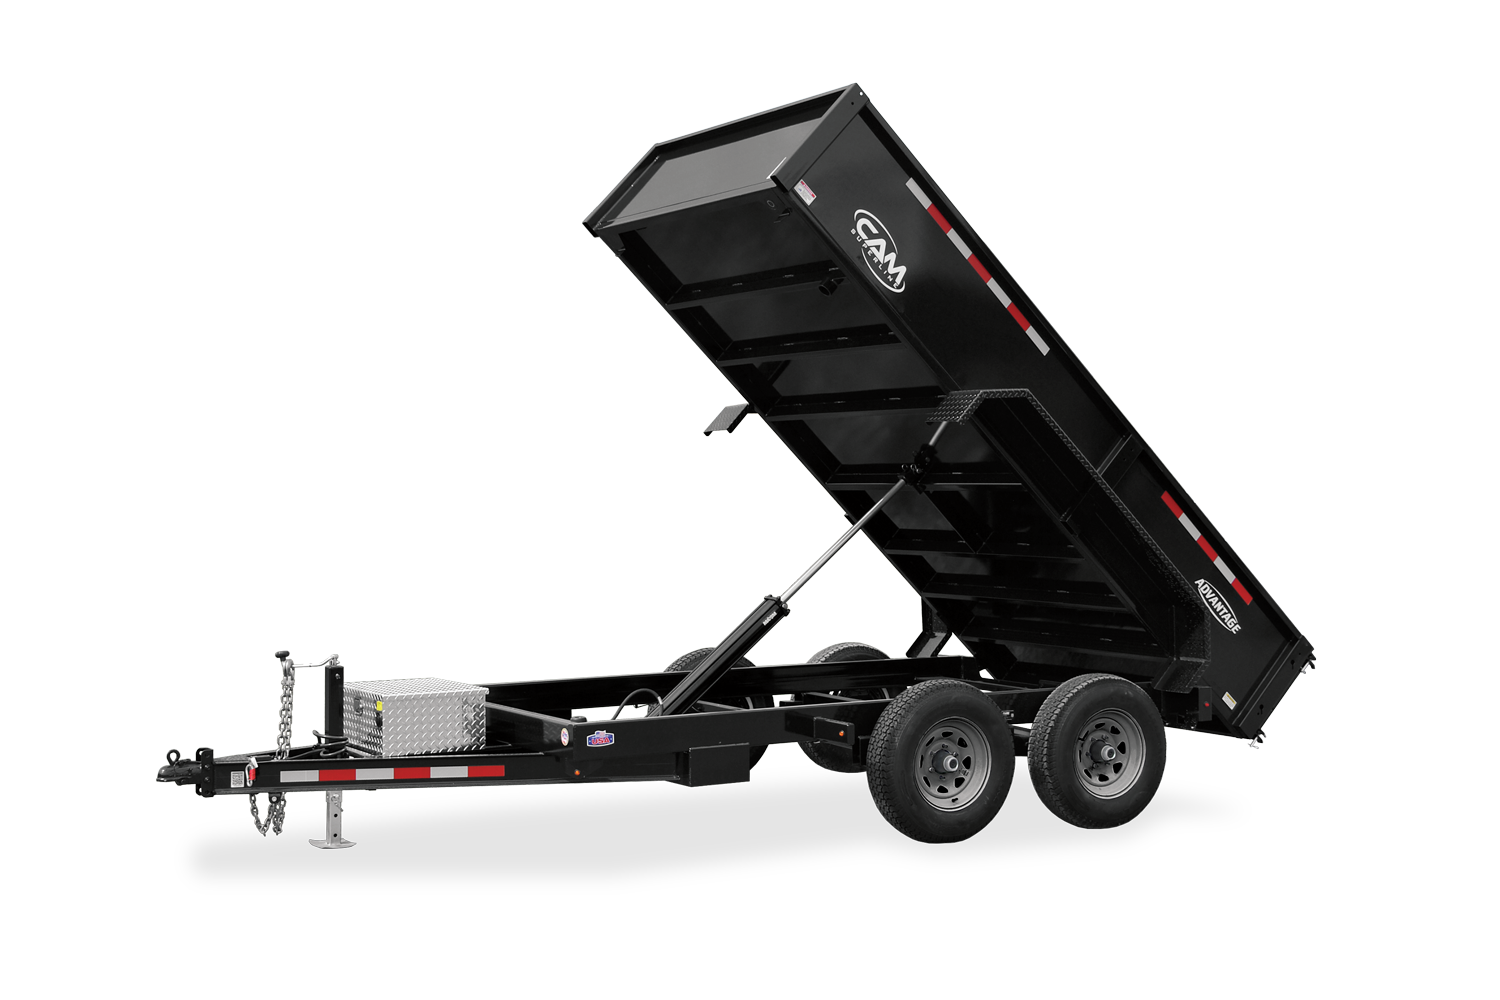 2021 Cam Superline 5 Ton 6' Wide x 12' Long Advantage Low Profile Dump Trailer